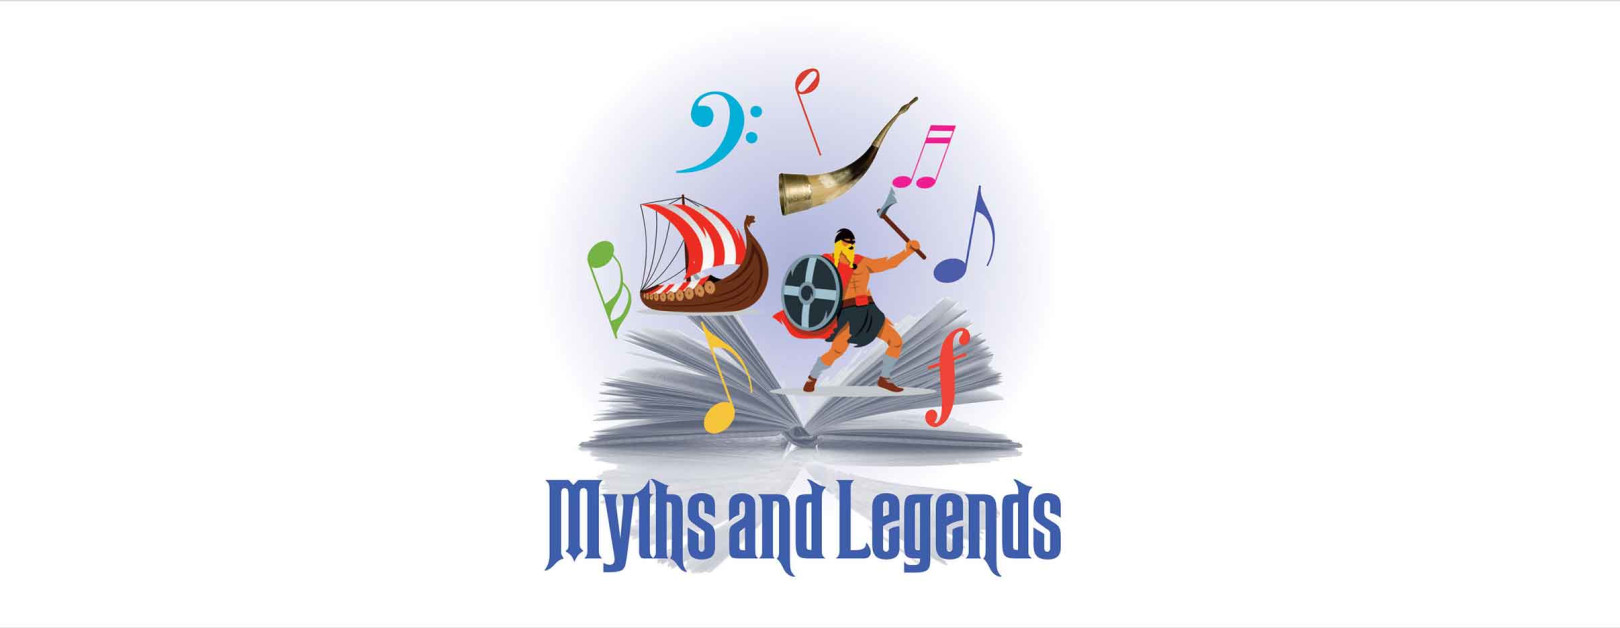 Young People's Concert: Myths and Legends